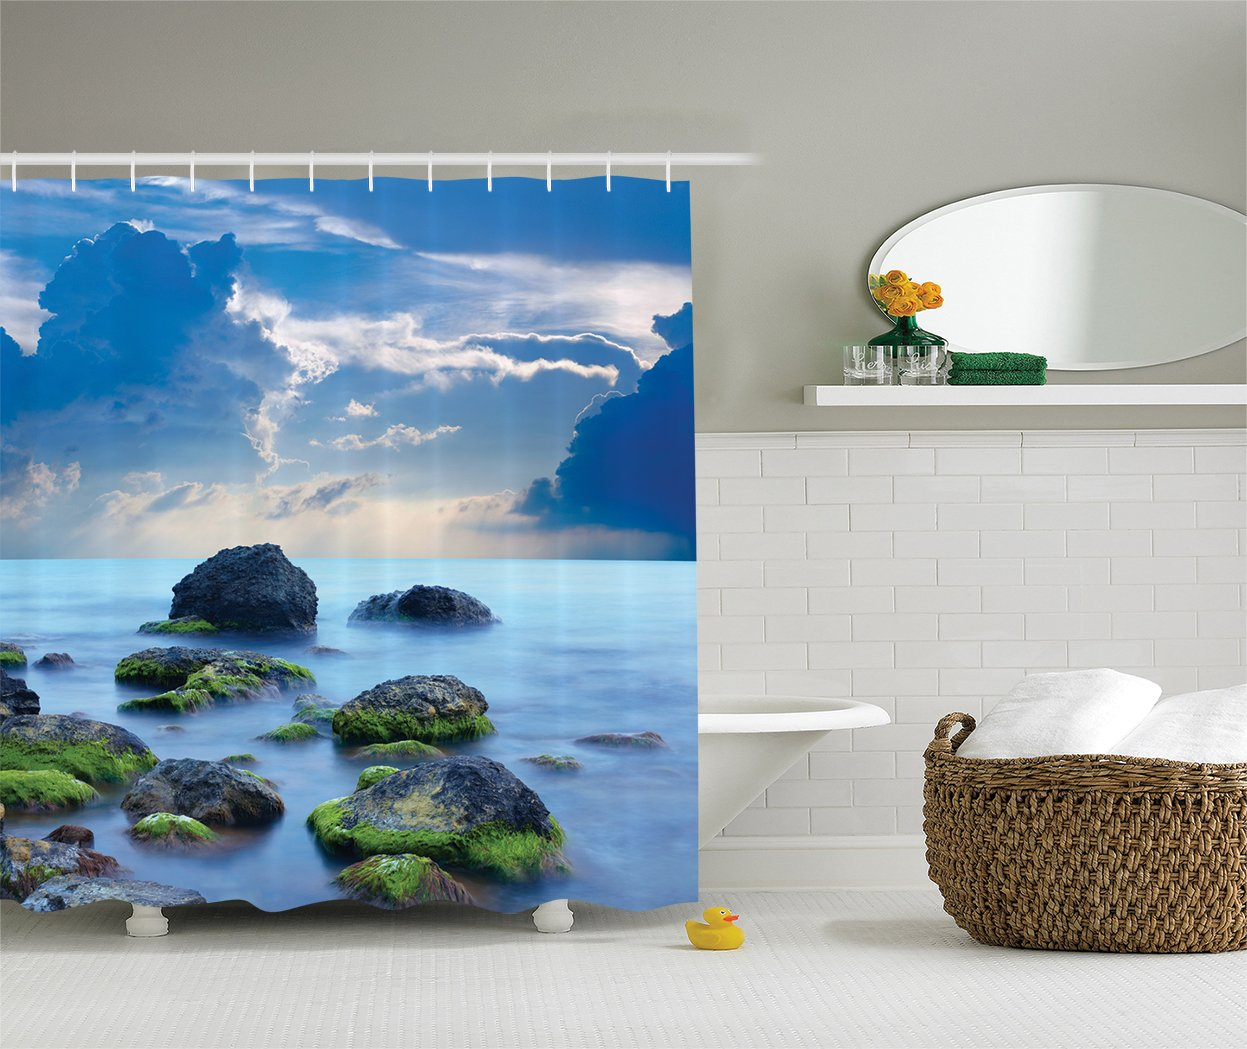 Ambesonne Spa Shower Curtain Decor, Sea Stones and Mystic Seaside Caribbean Photo Print, Polyester Fabric Bathroom Set with Hooks, 75 Inches Long, Slate Grey Sky Blue Cyan and White